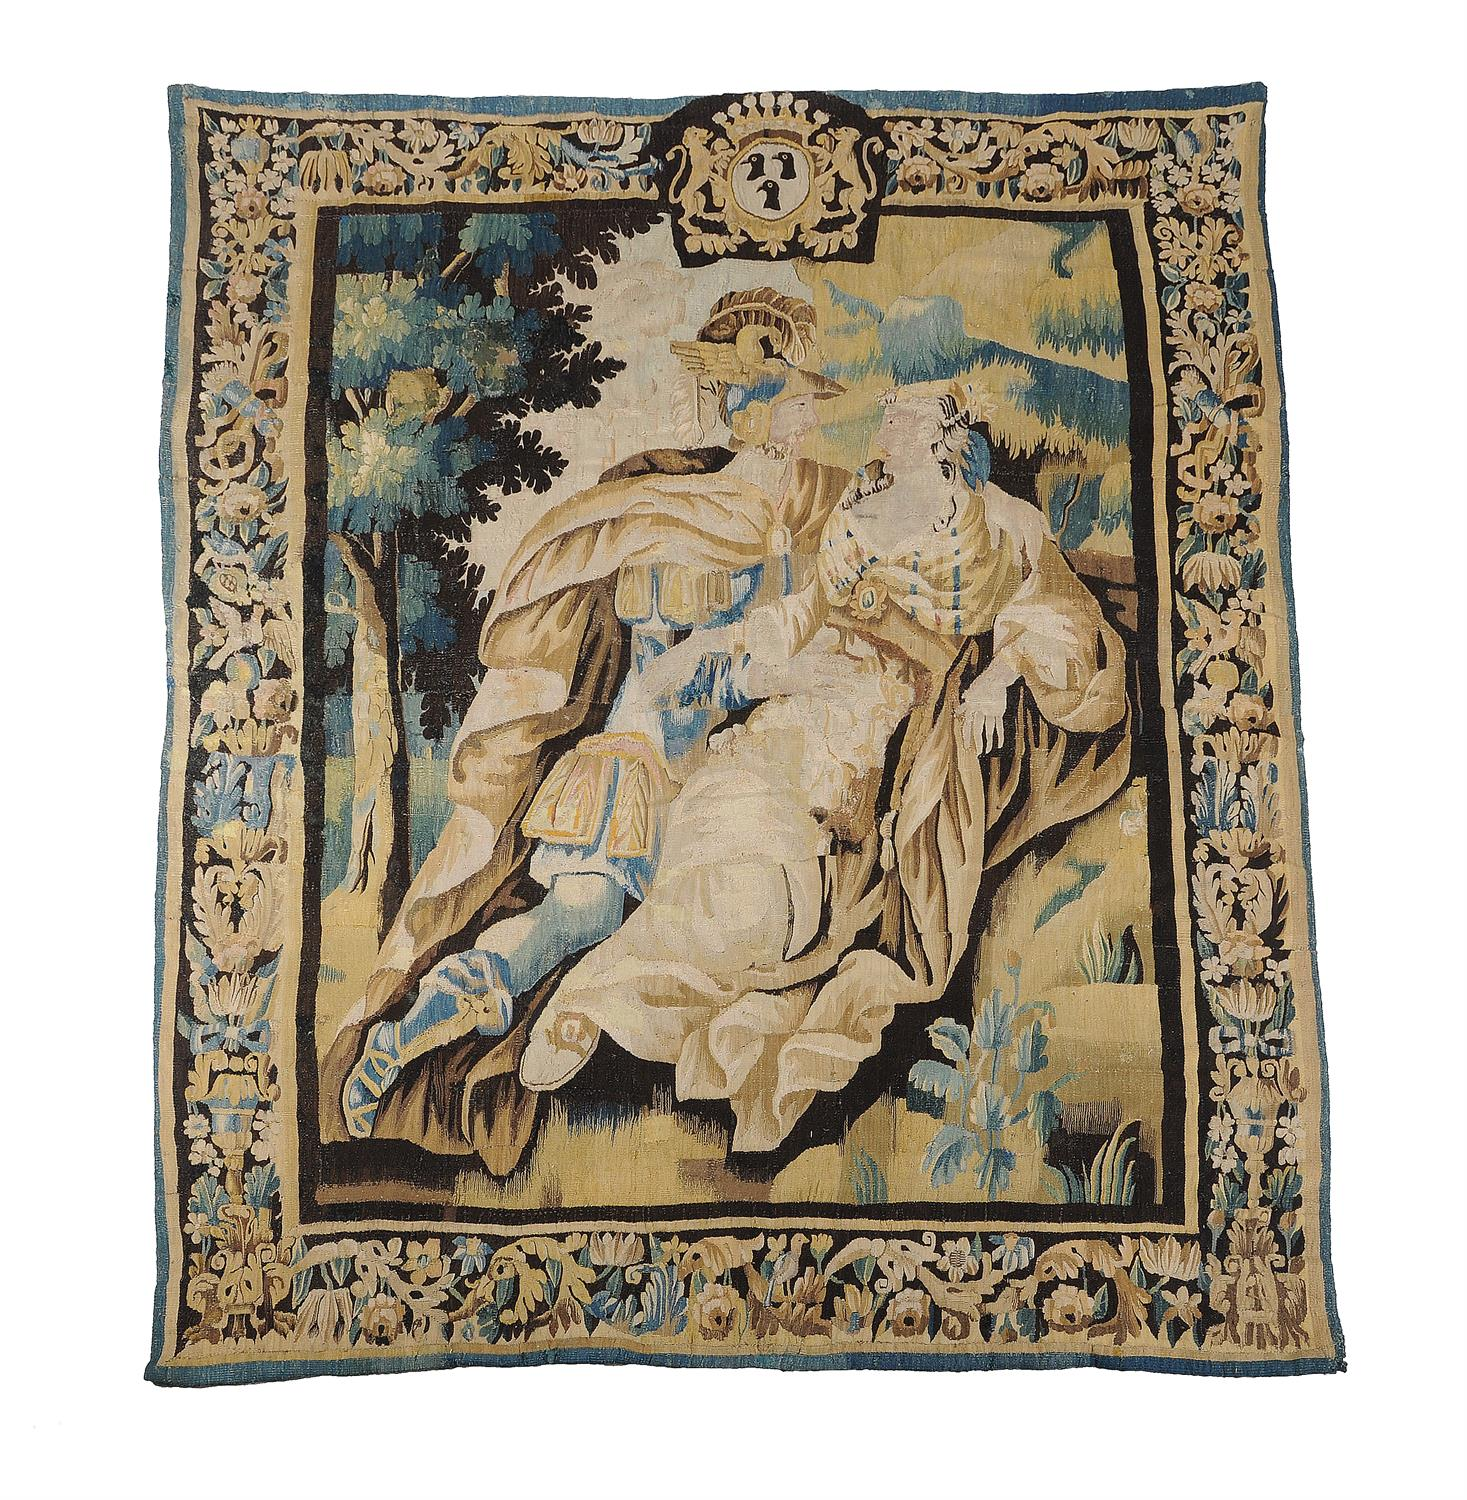 A Louis XIV Aubusson historical tapestry with Dido and Aeneas resting